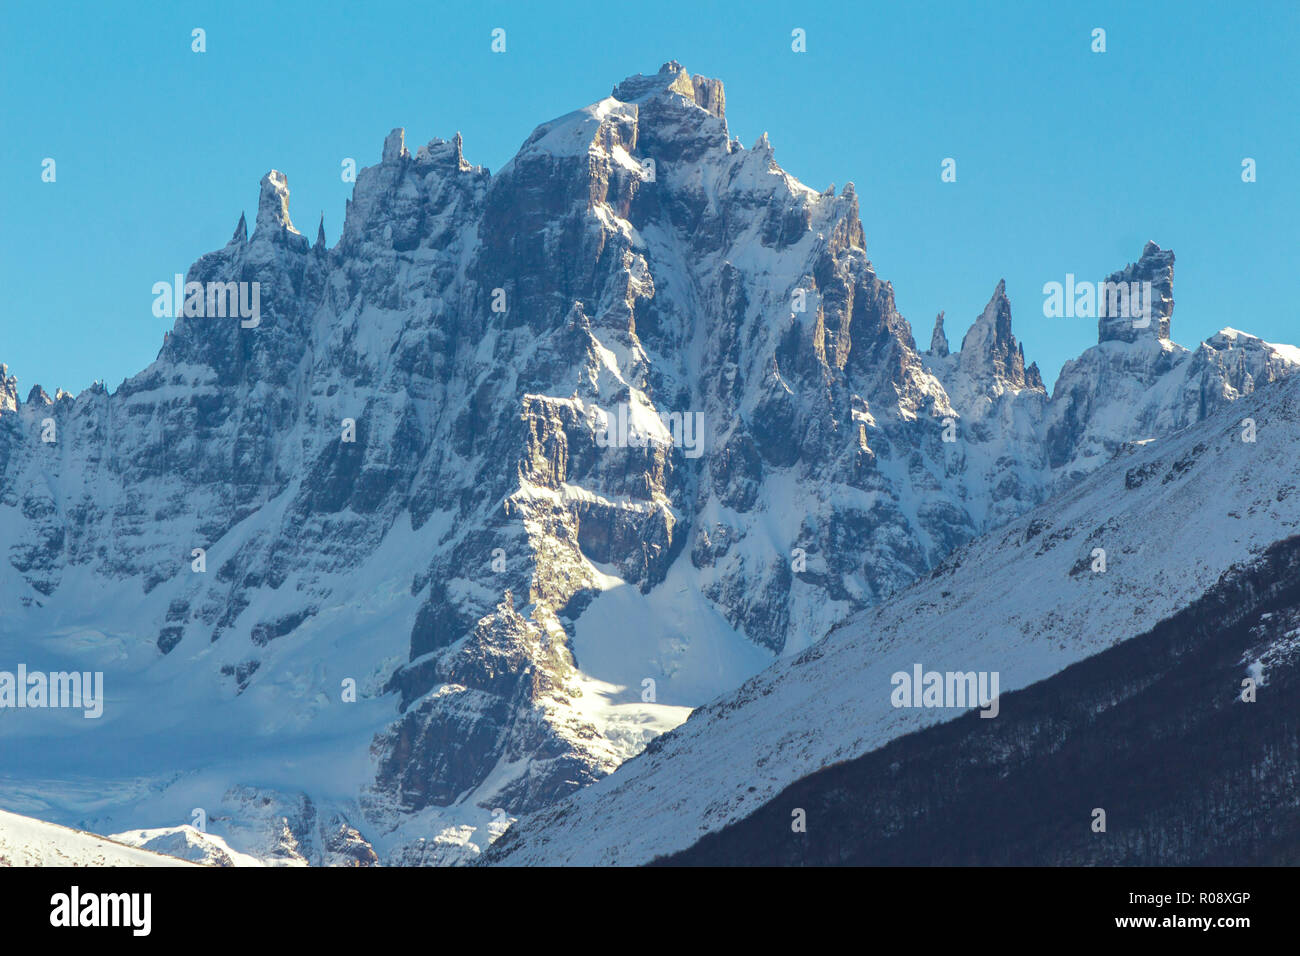 The snowy peack of Cerro Castillo mountain, which really looks like a castle, at carretera austral, the Route 7 at Chile - Stock Image